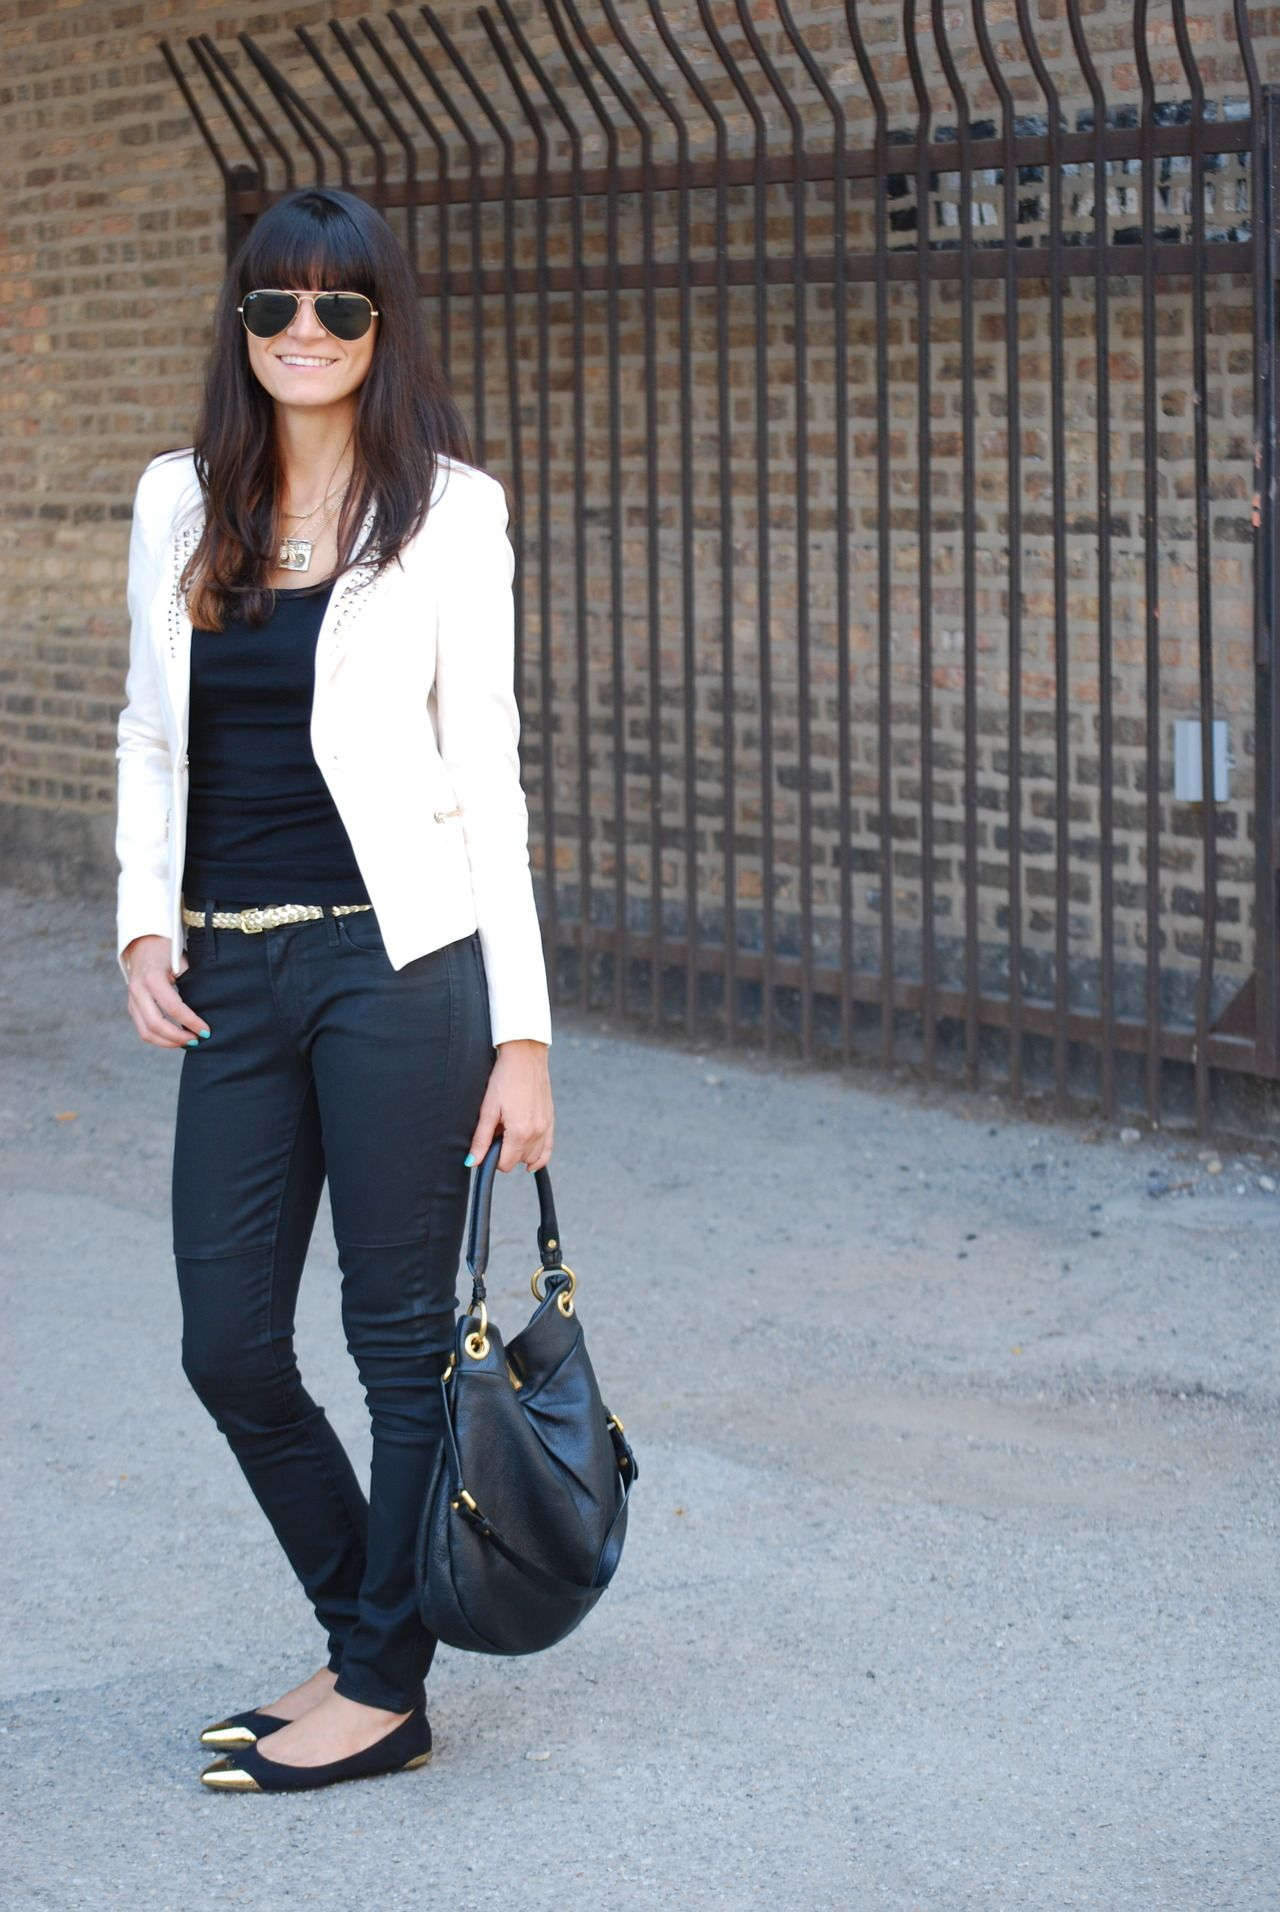 A pair of Gap jeans as featured on the blog @Peggy